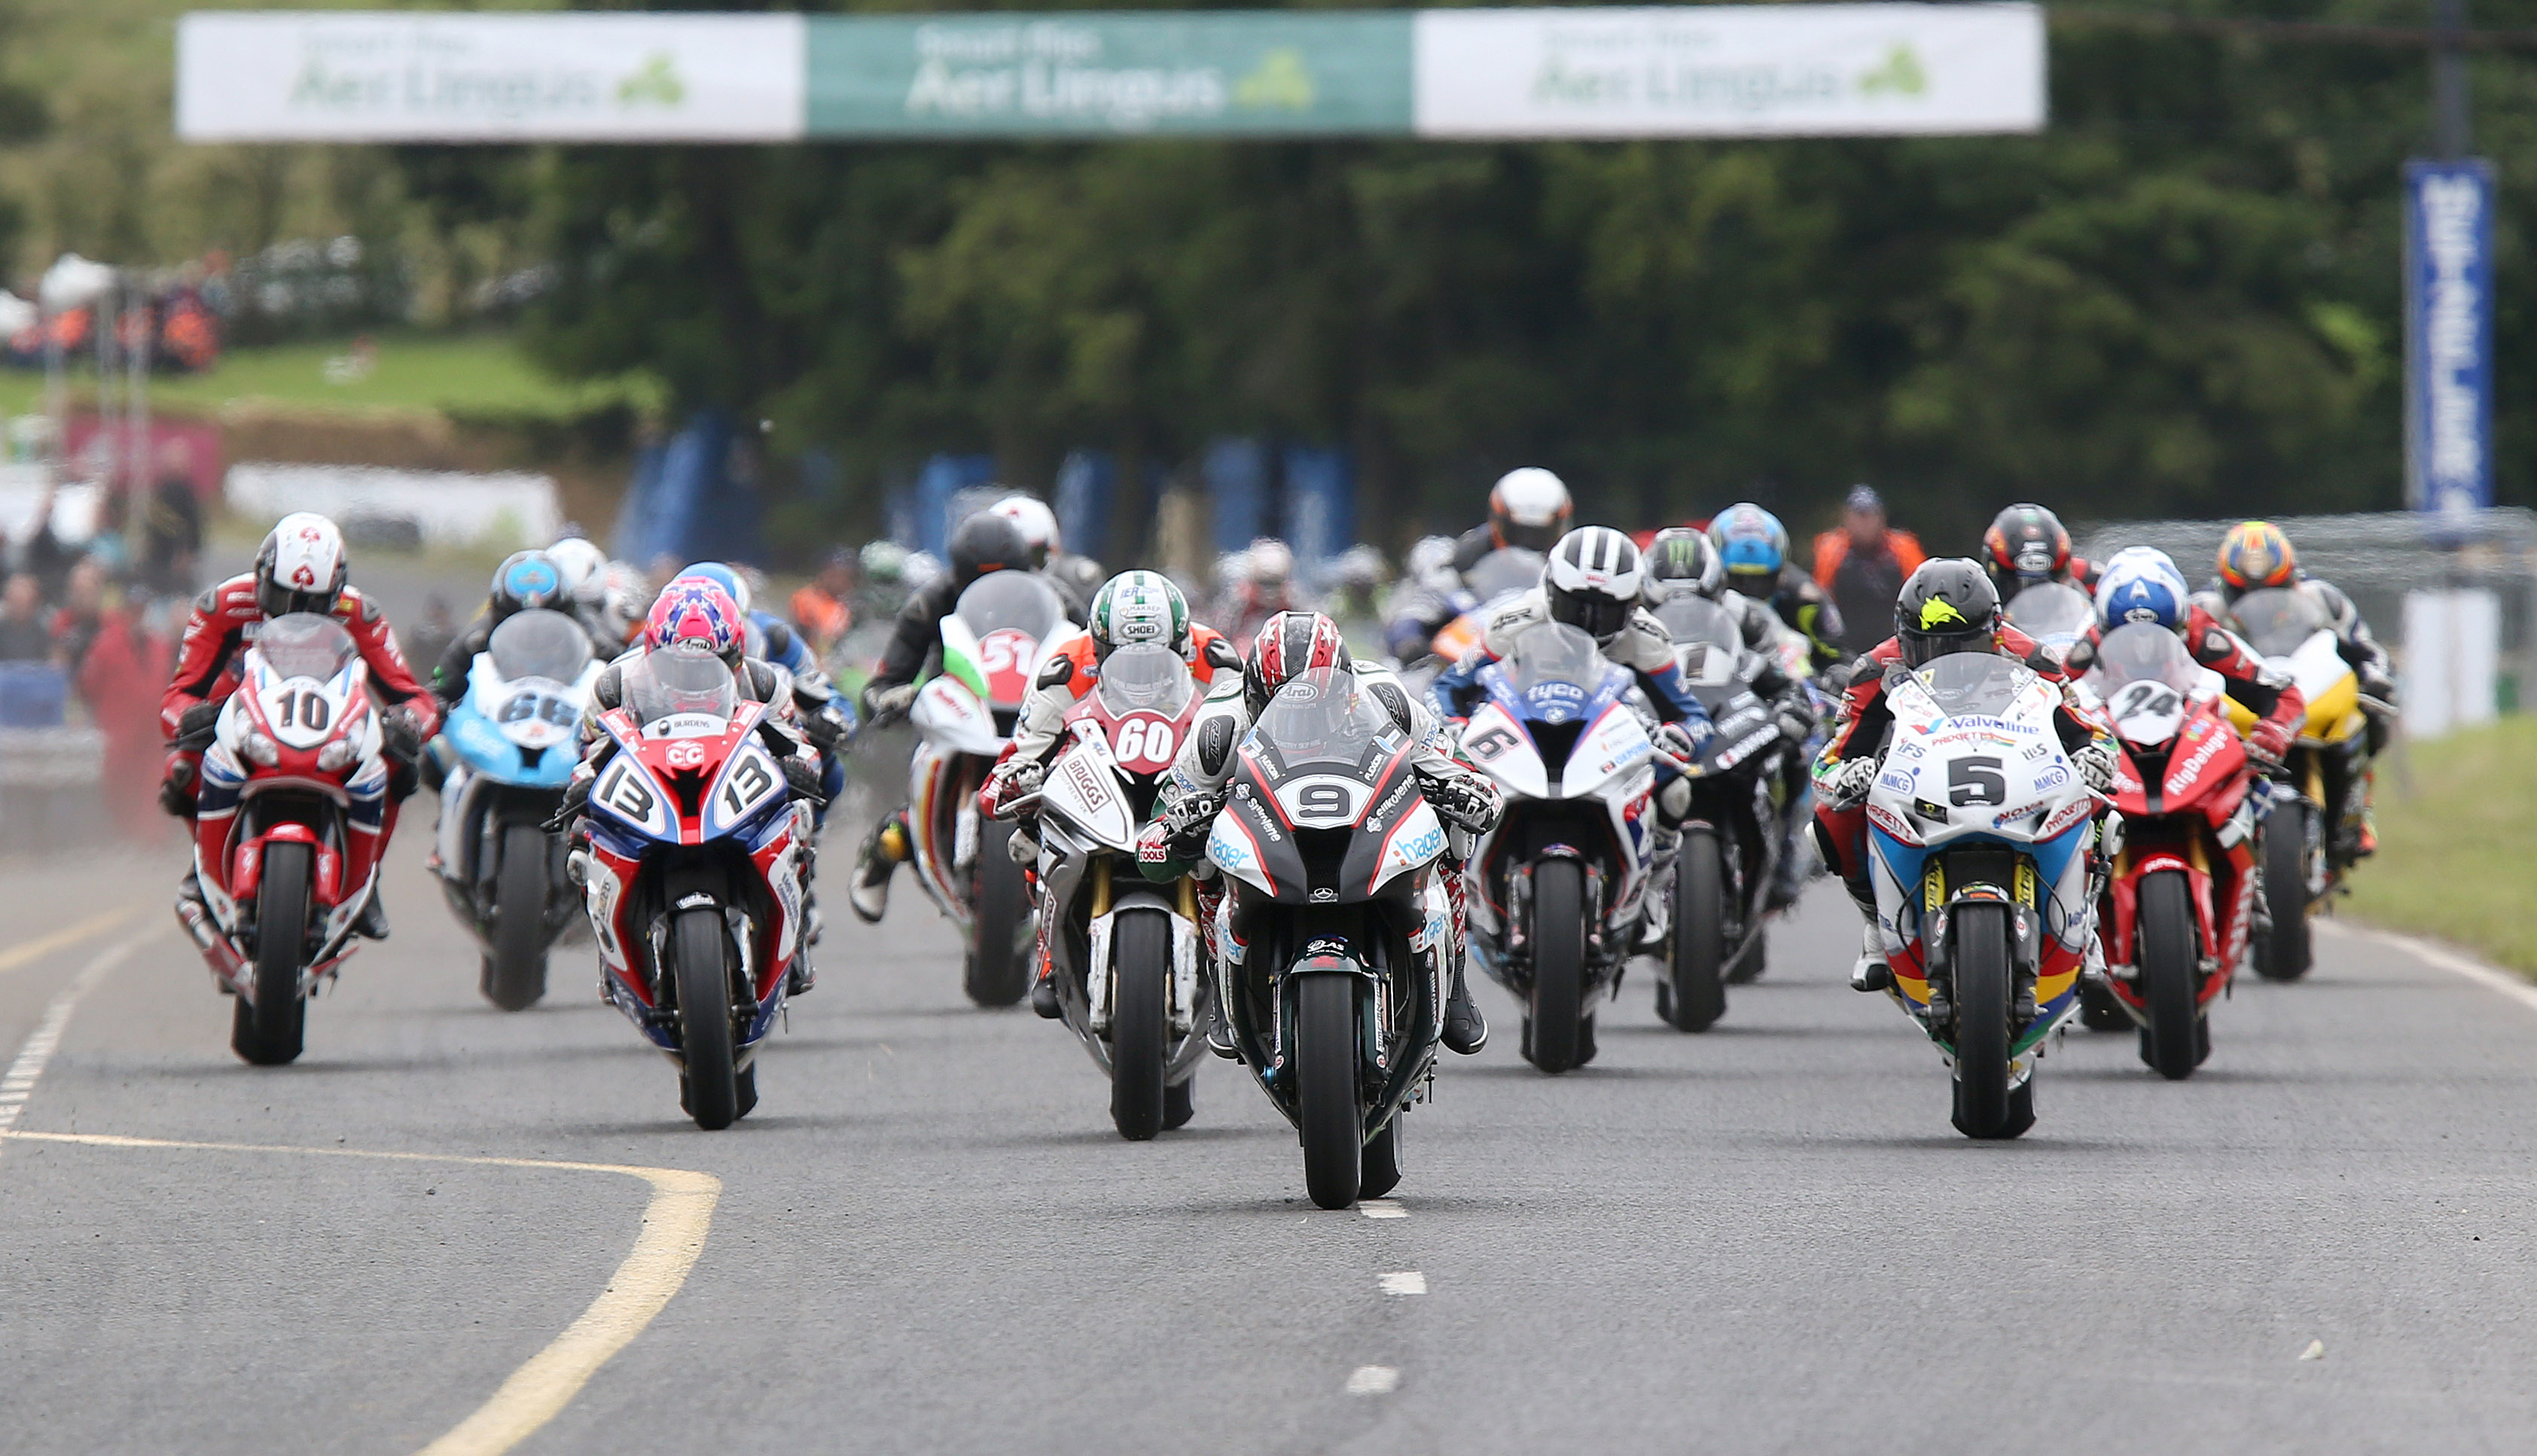 Ulster Grand Prix announces Superpole session for top Superbike qualifiers